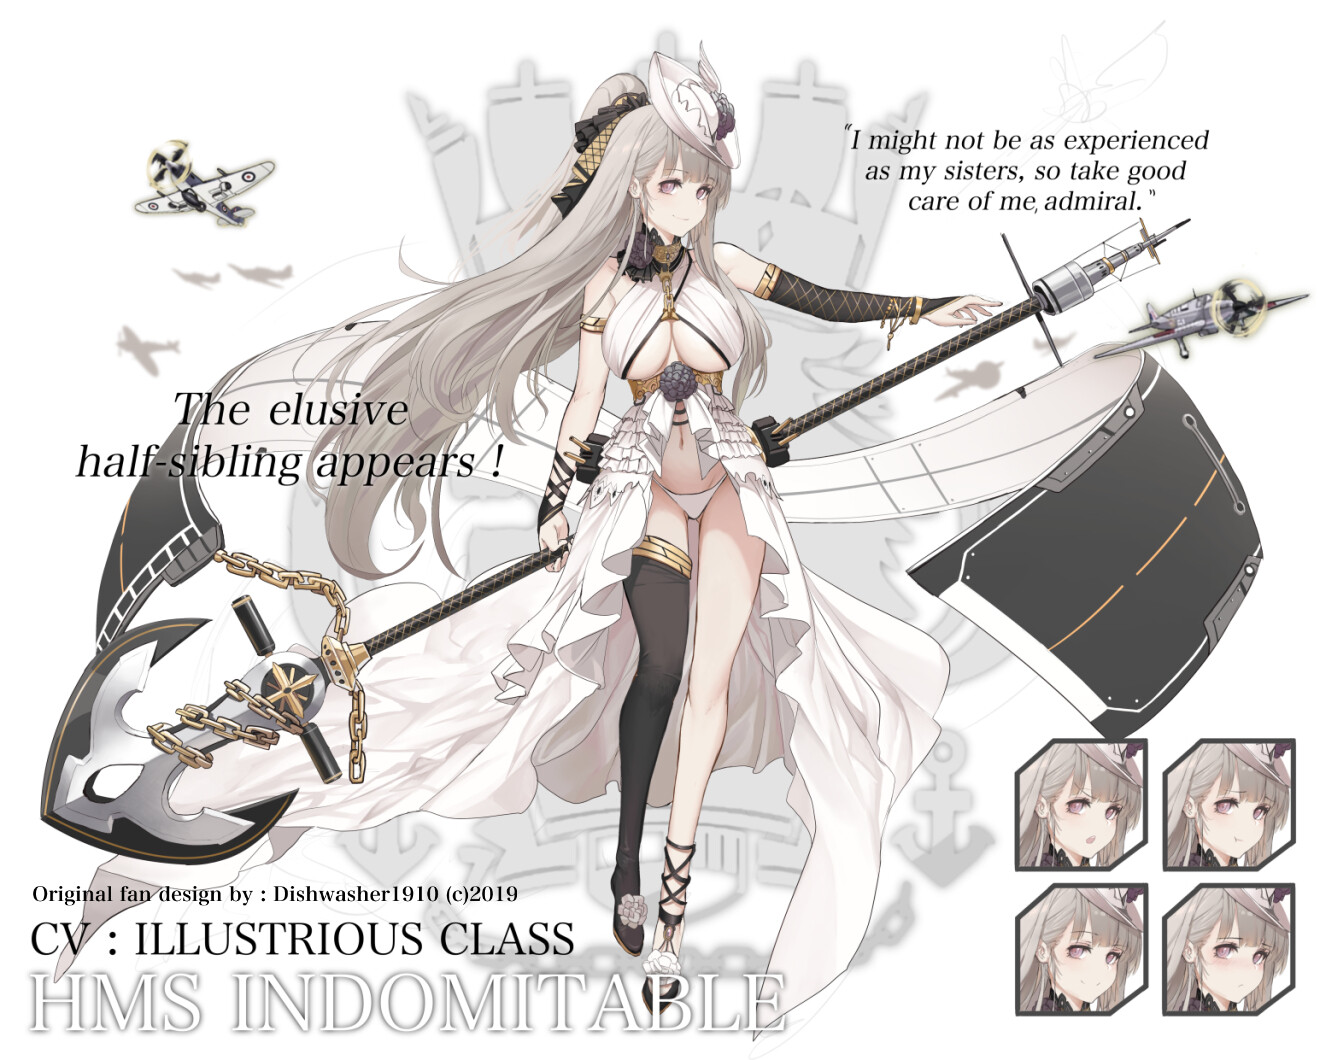 HMS Indomitable - Azur Lane fandesign